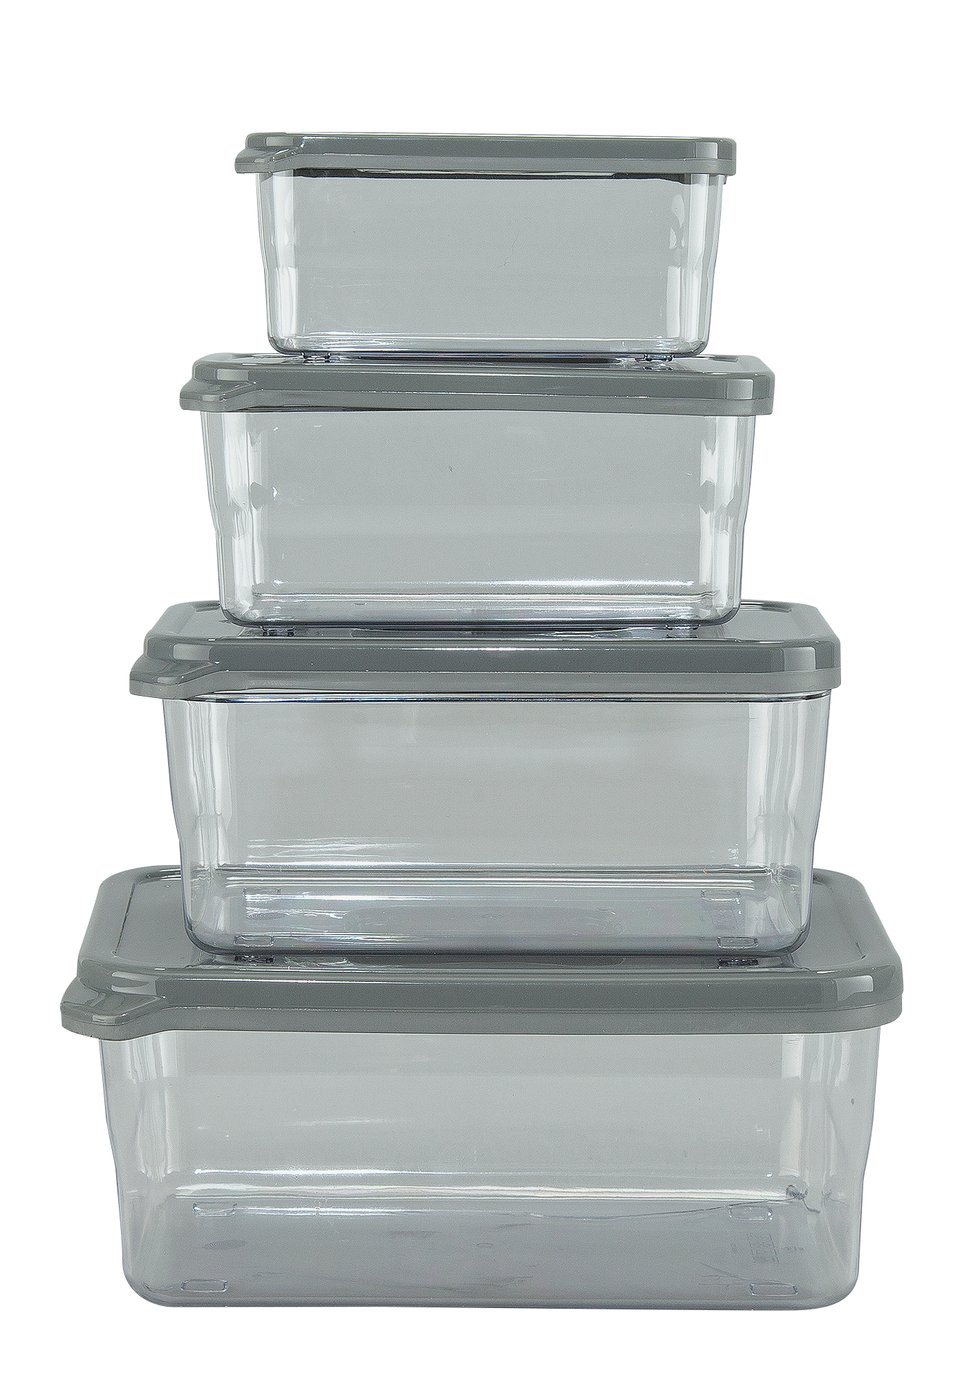 Thumbs Up Set of 4 Rectangular Nesting Food Containers review